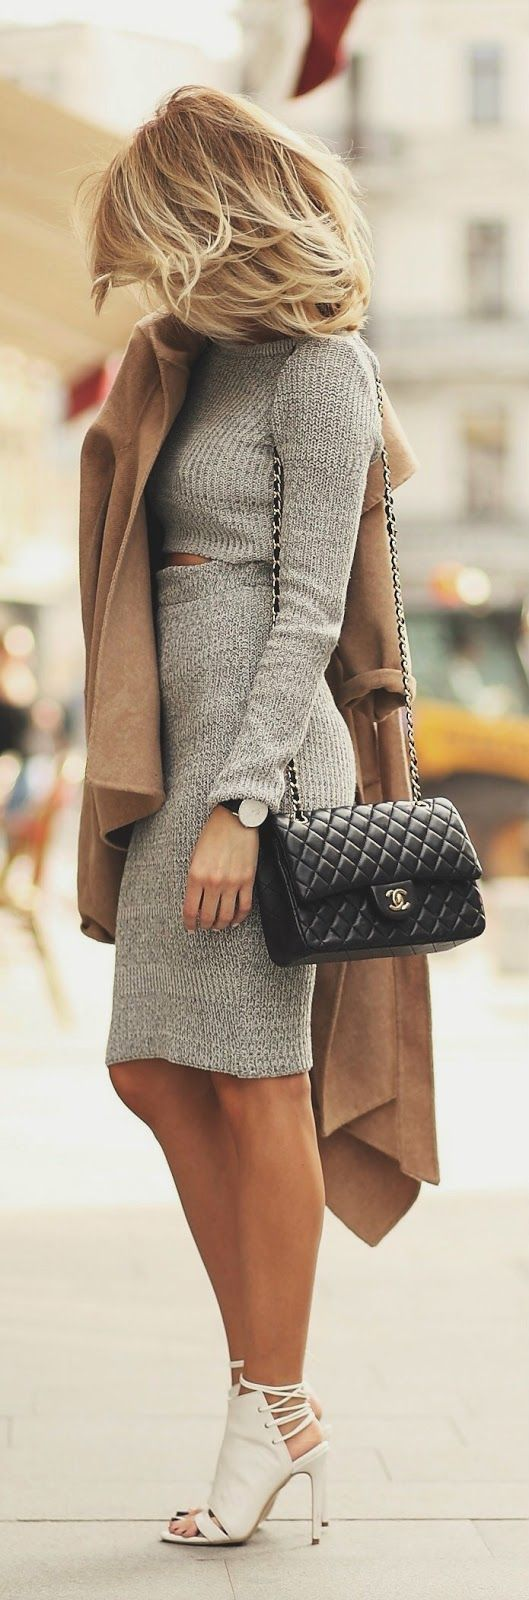 Latest fashion trends: Street fashion knit crop top and skirt